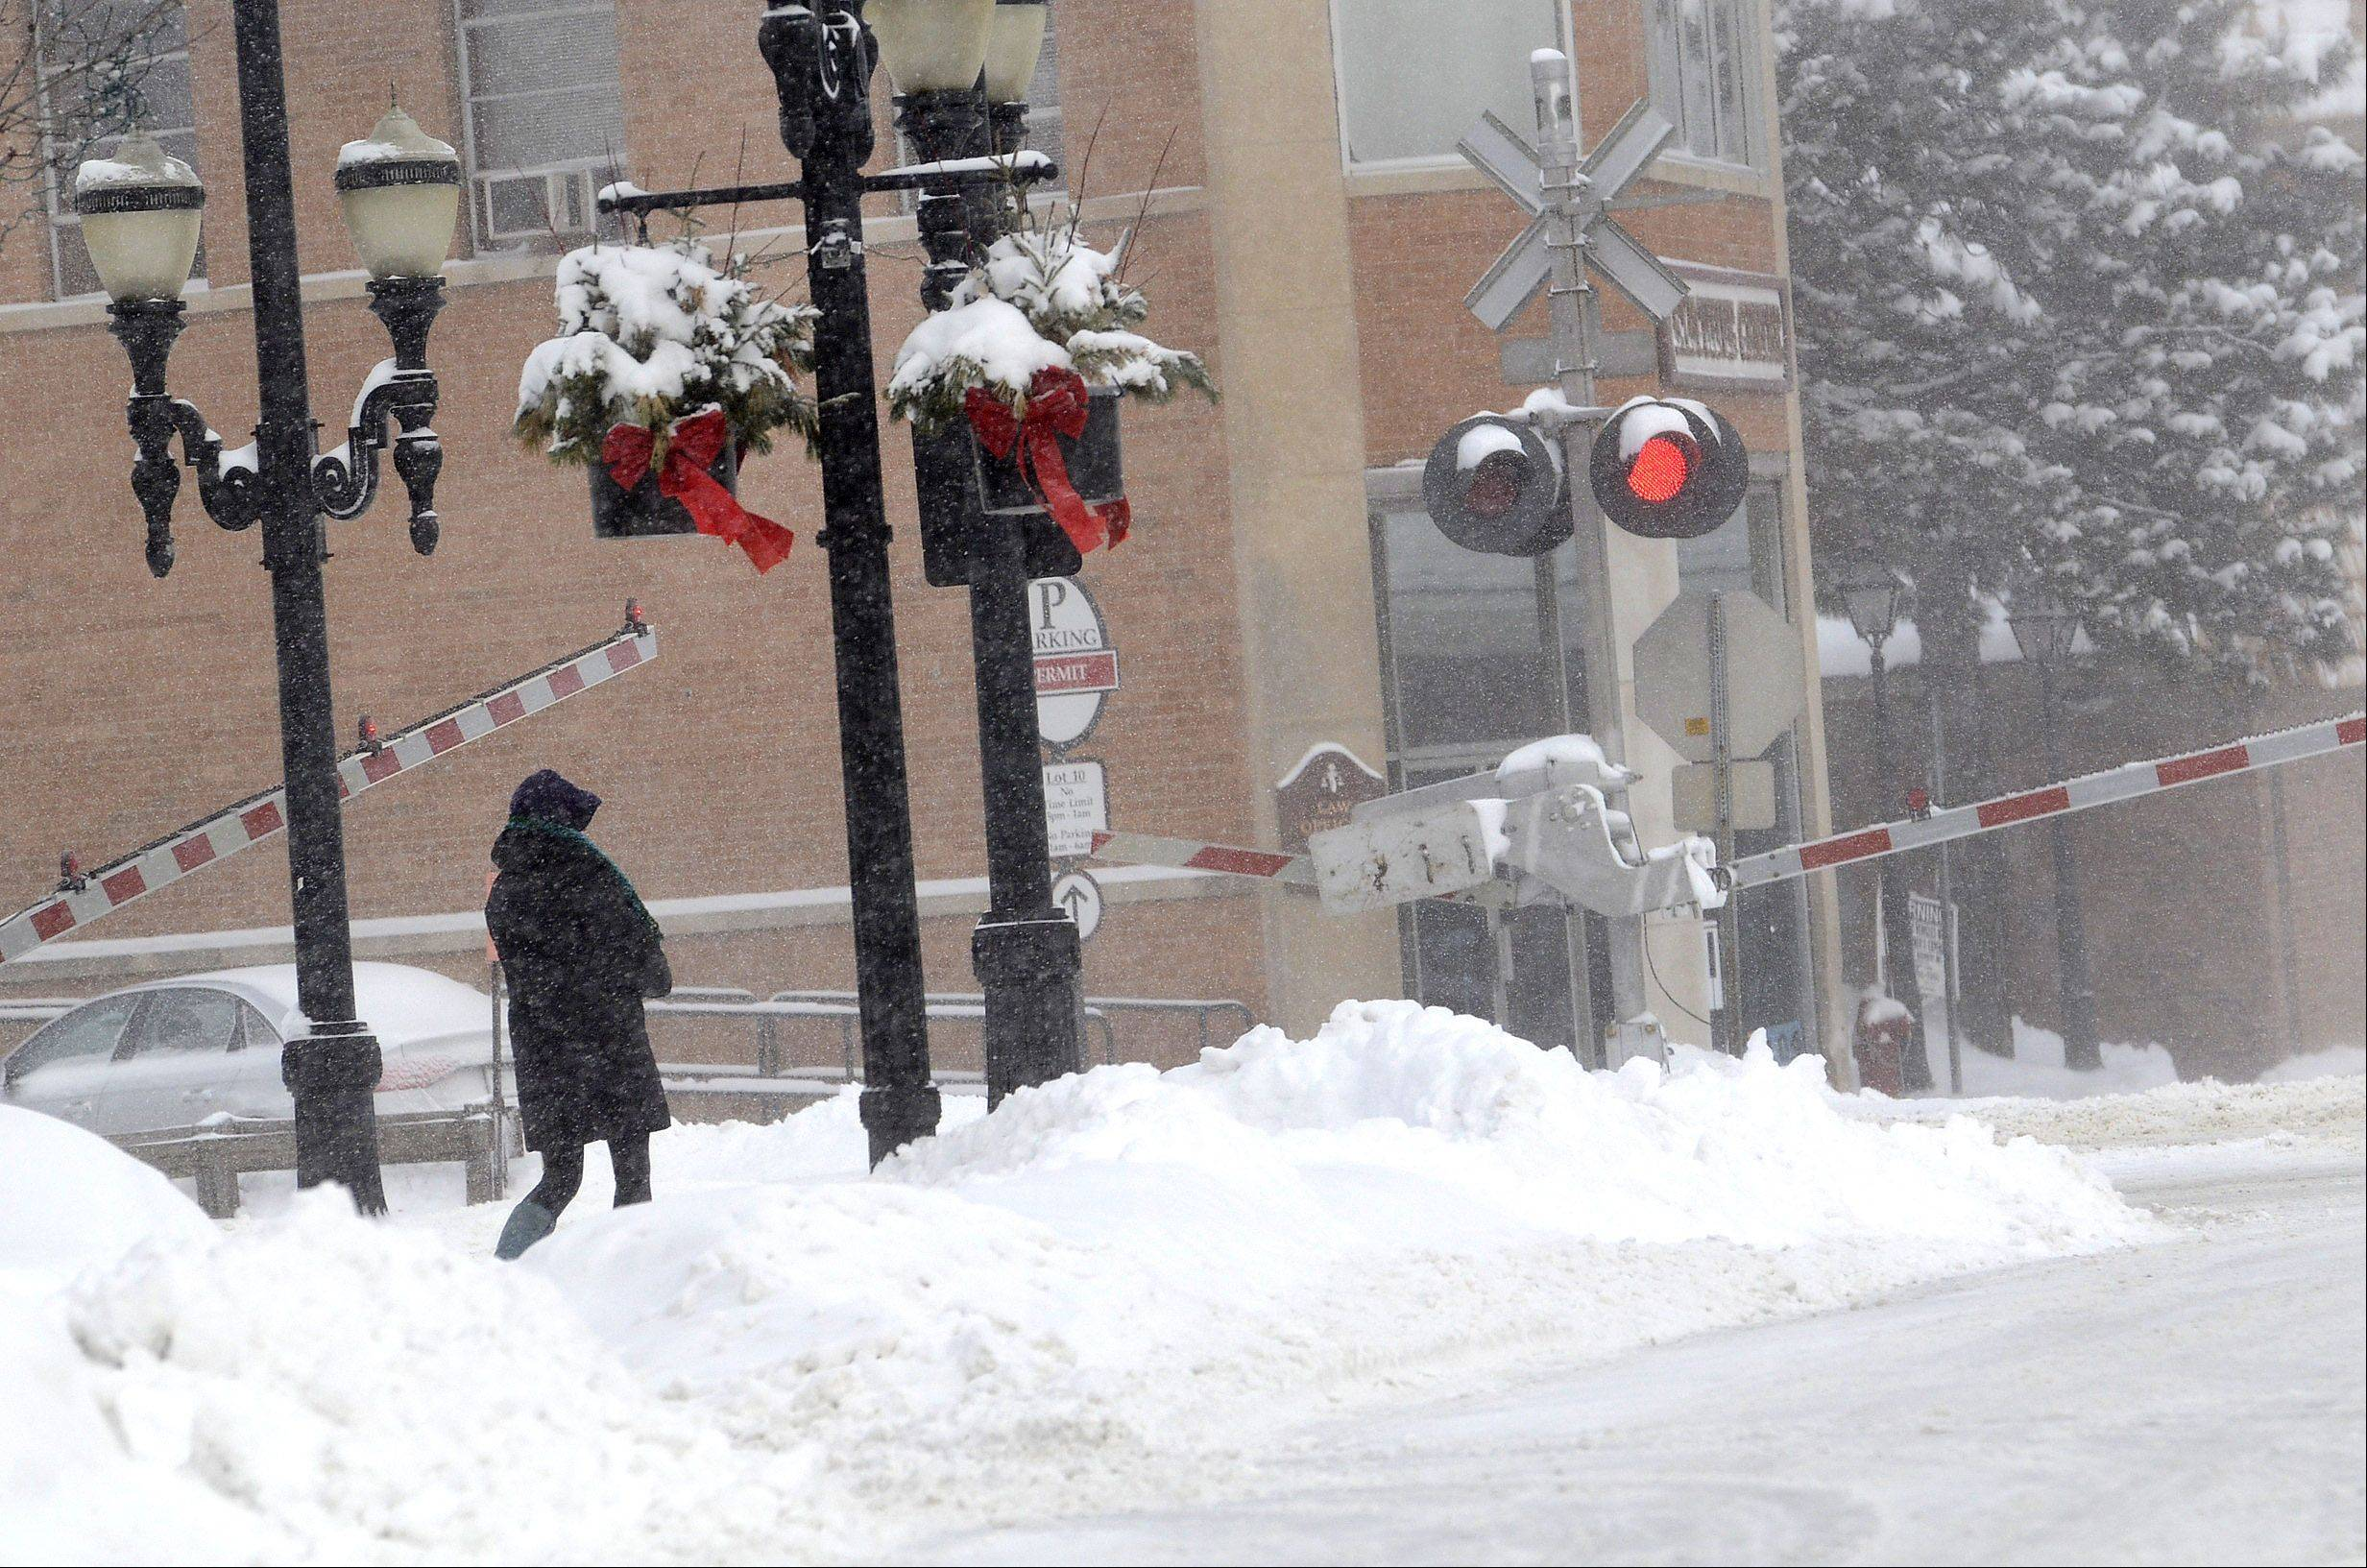 Pedestrians struggle to navigate through the snow Thursday morning in downtown Barrington.